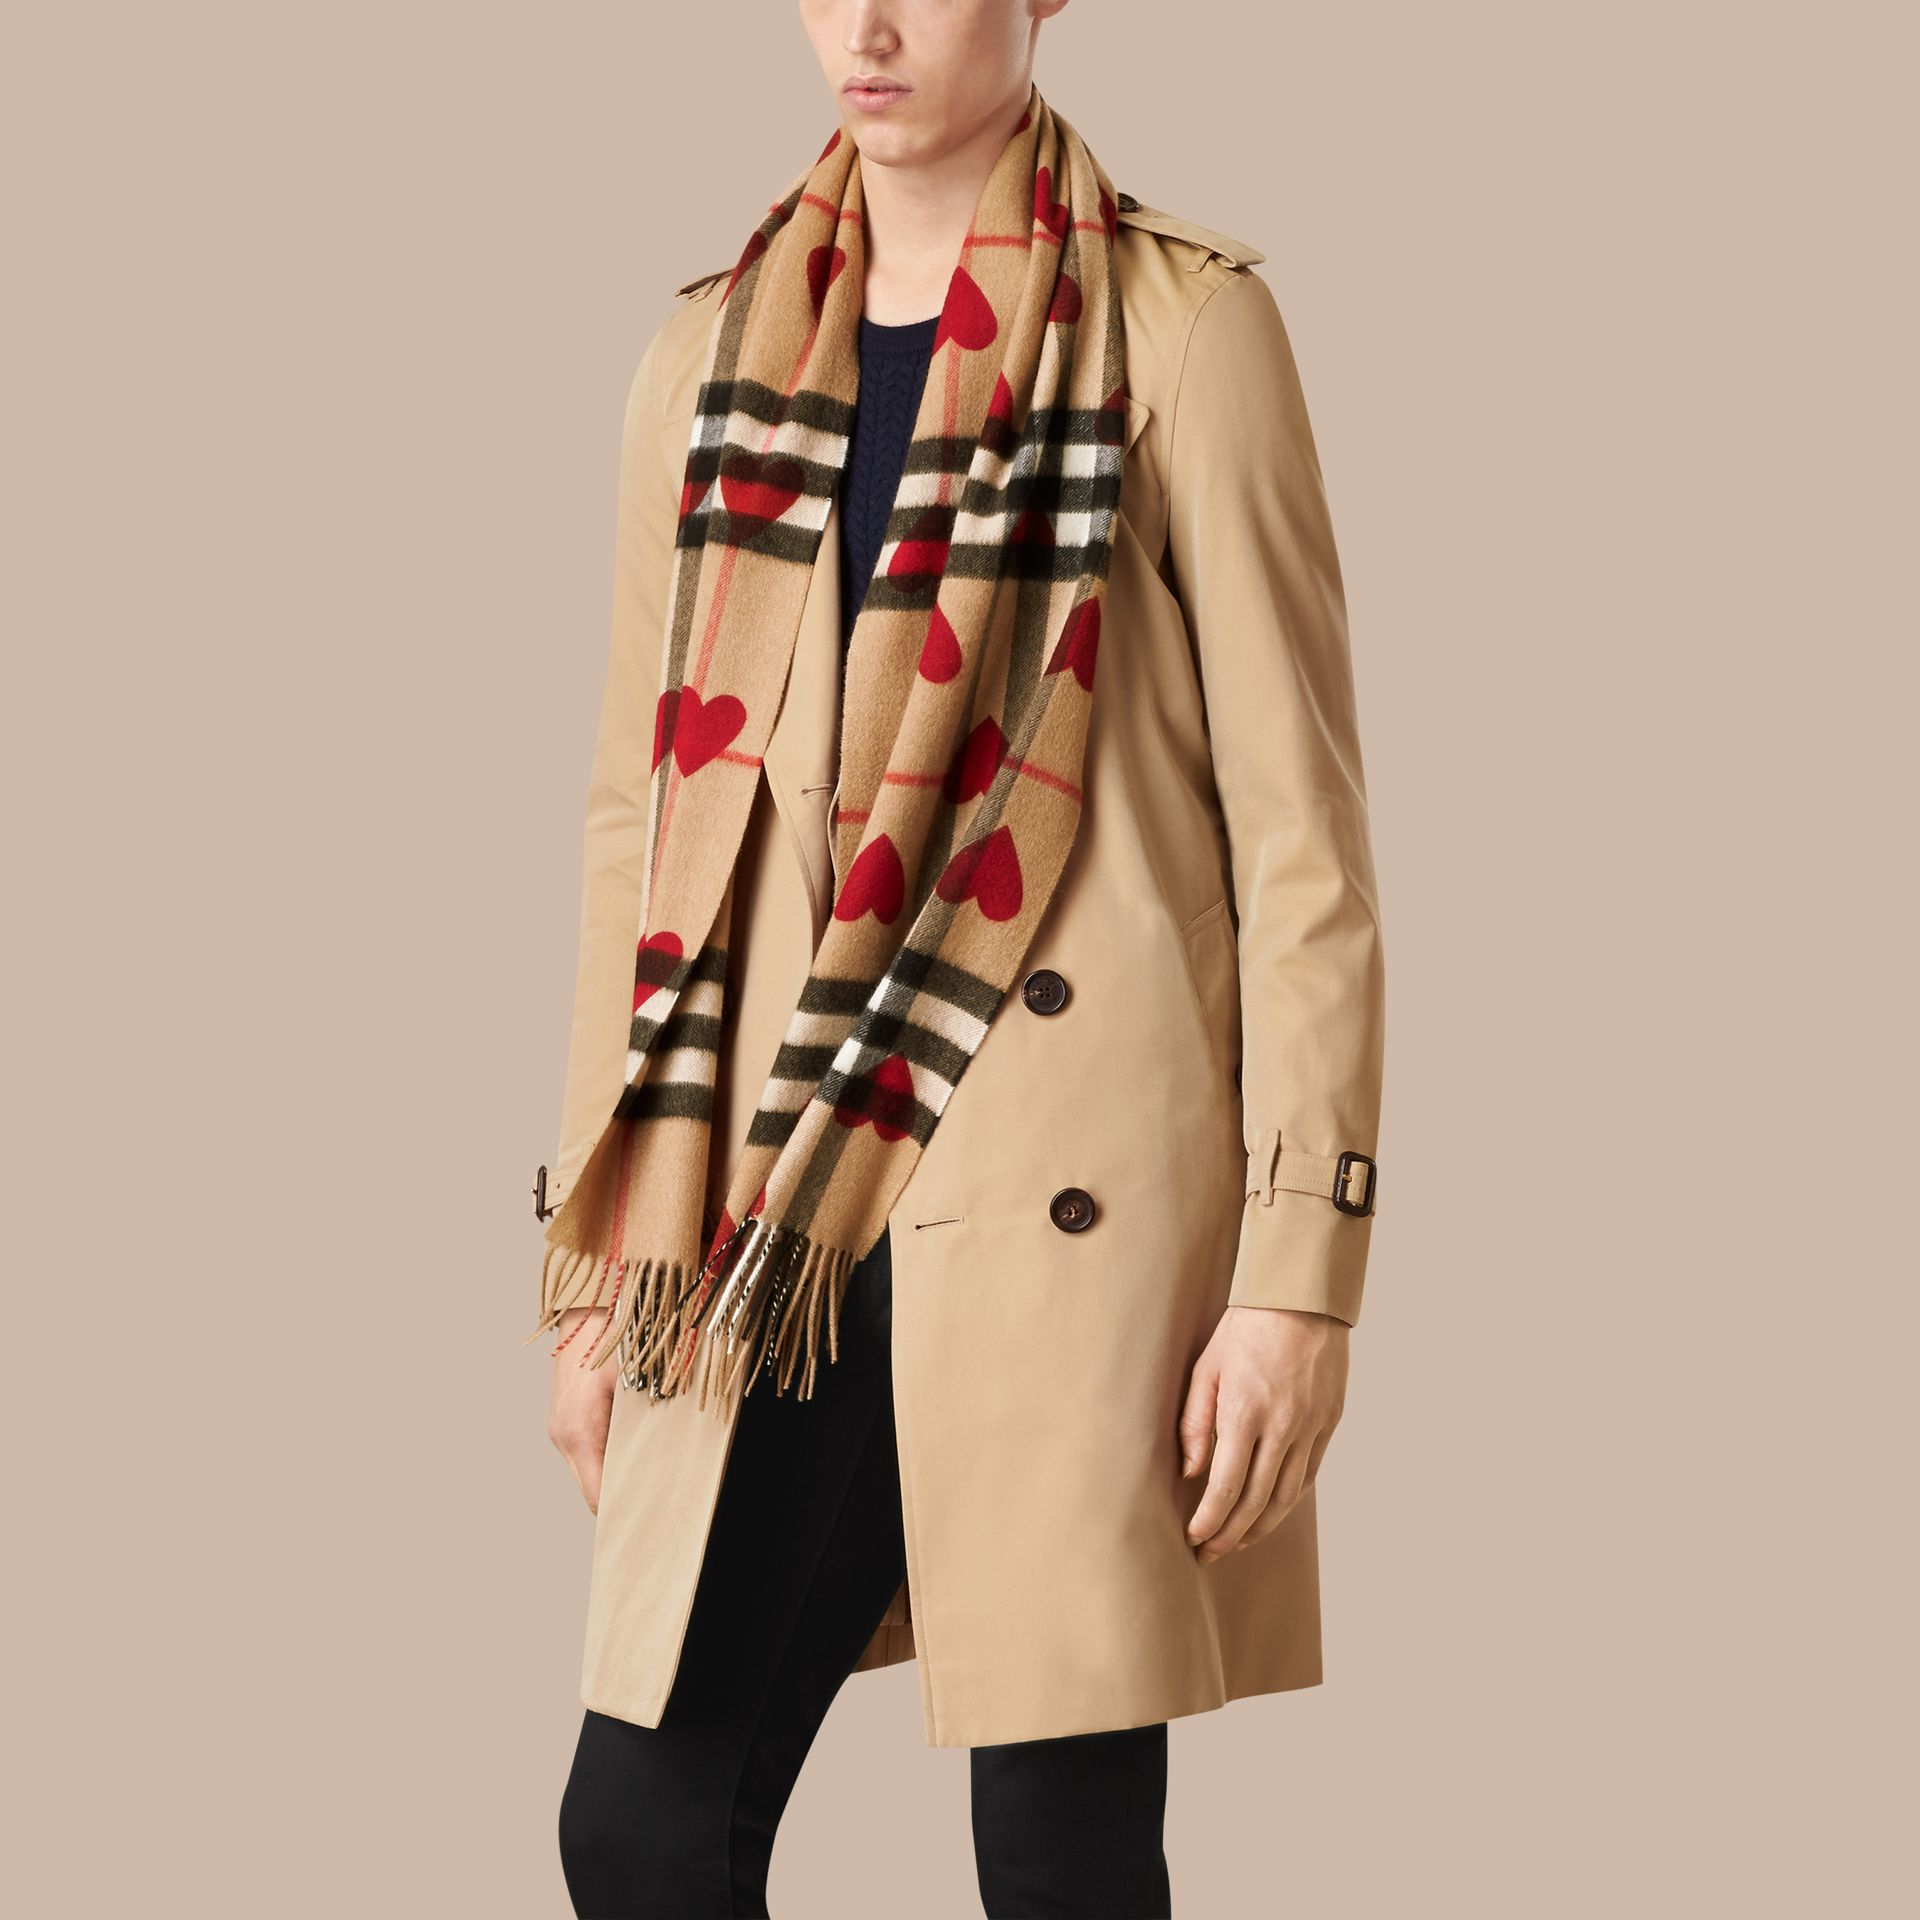 Parade red The Classic Cashmere Scarf in Check and Hearts Parade Red - gallery image 4